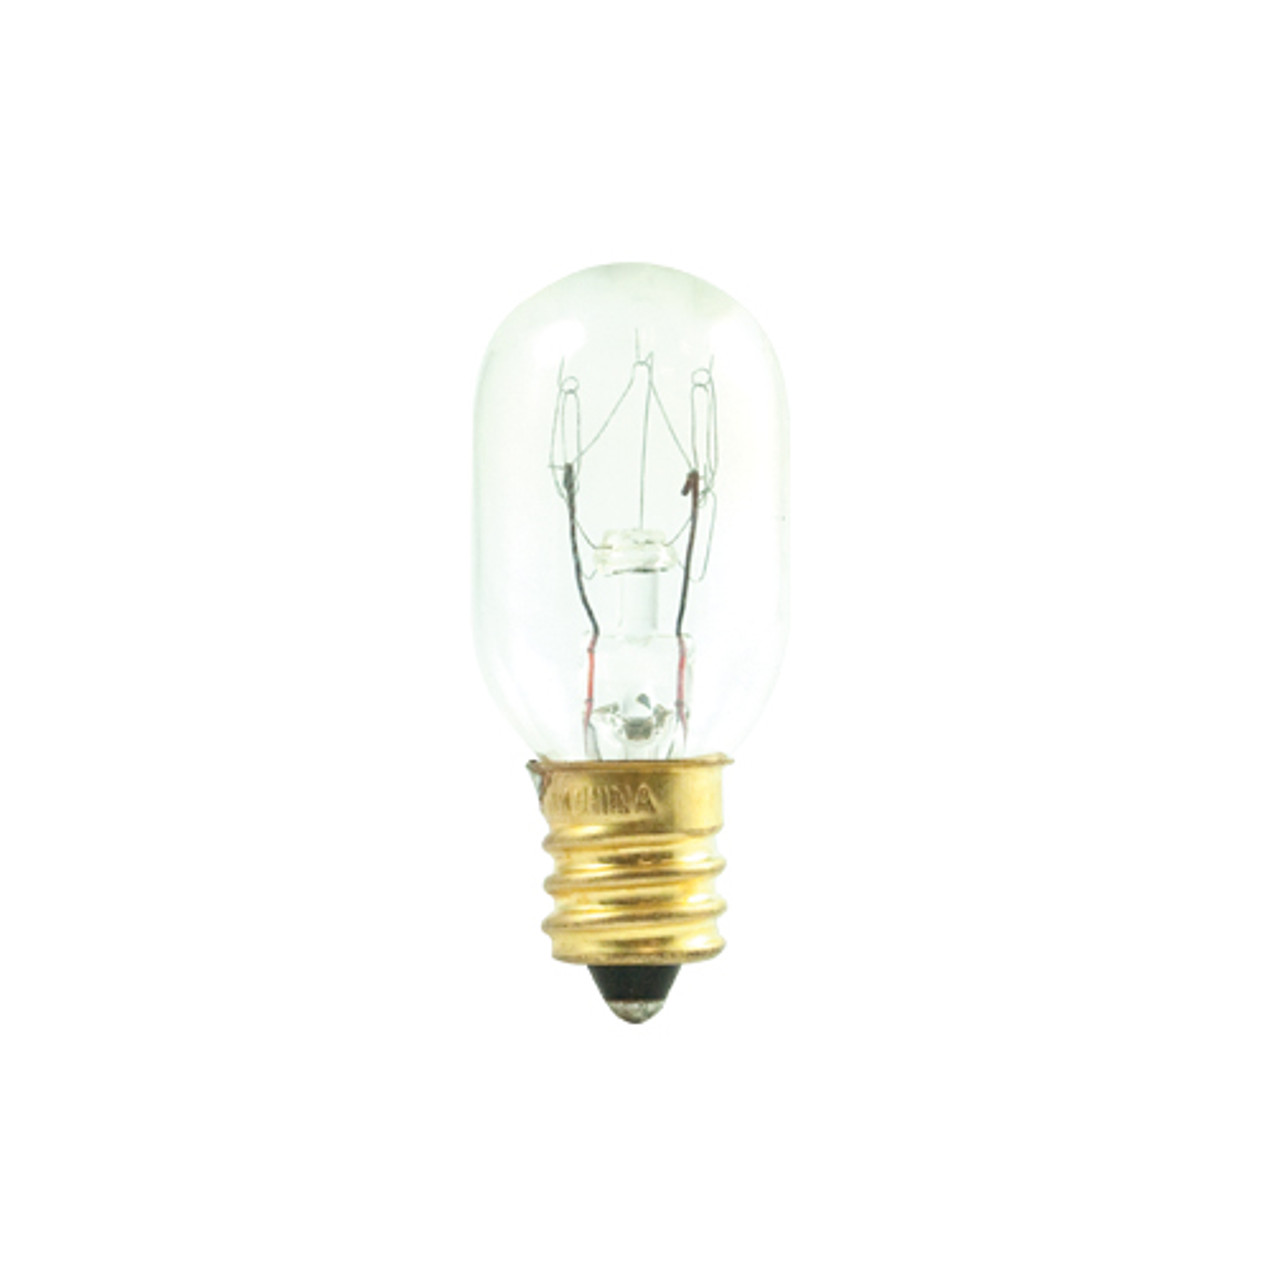 15 Watt T7 Appliance Lamp Clear 130Volt